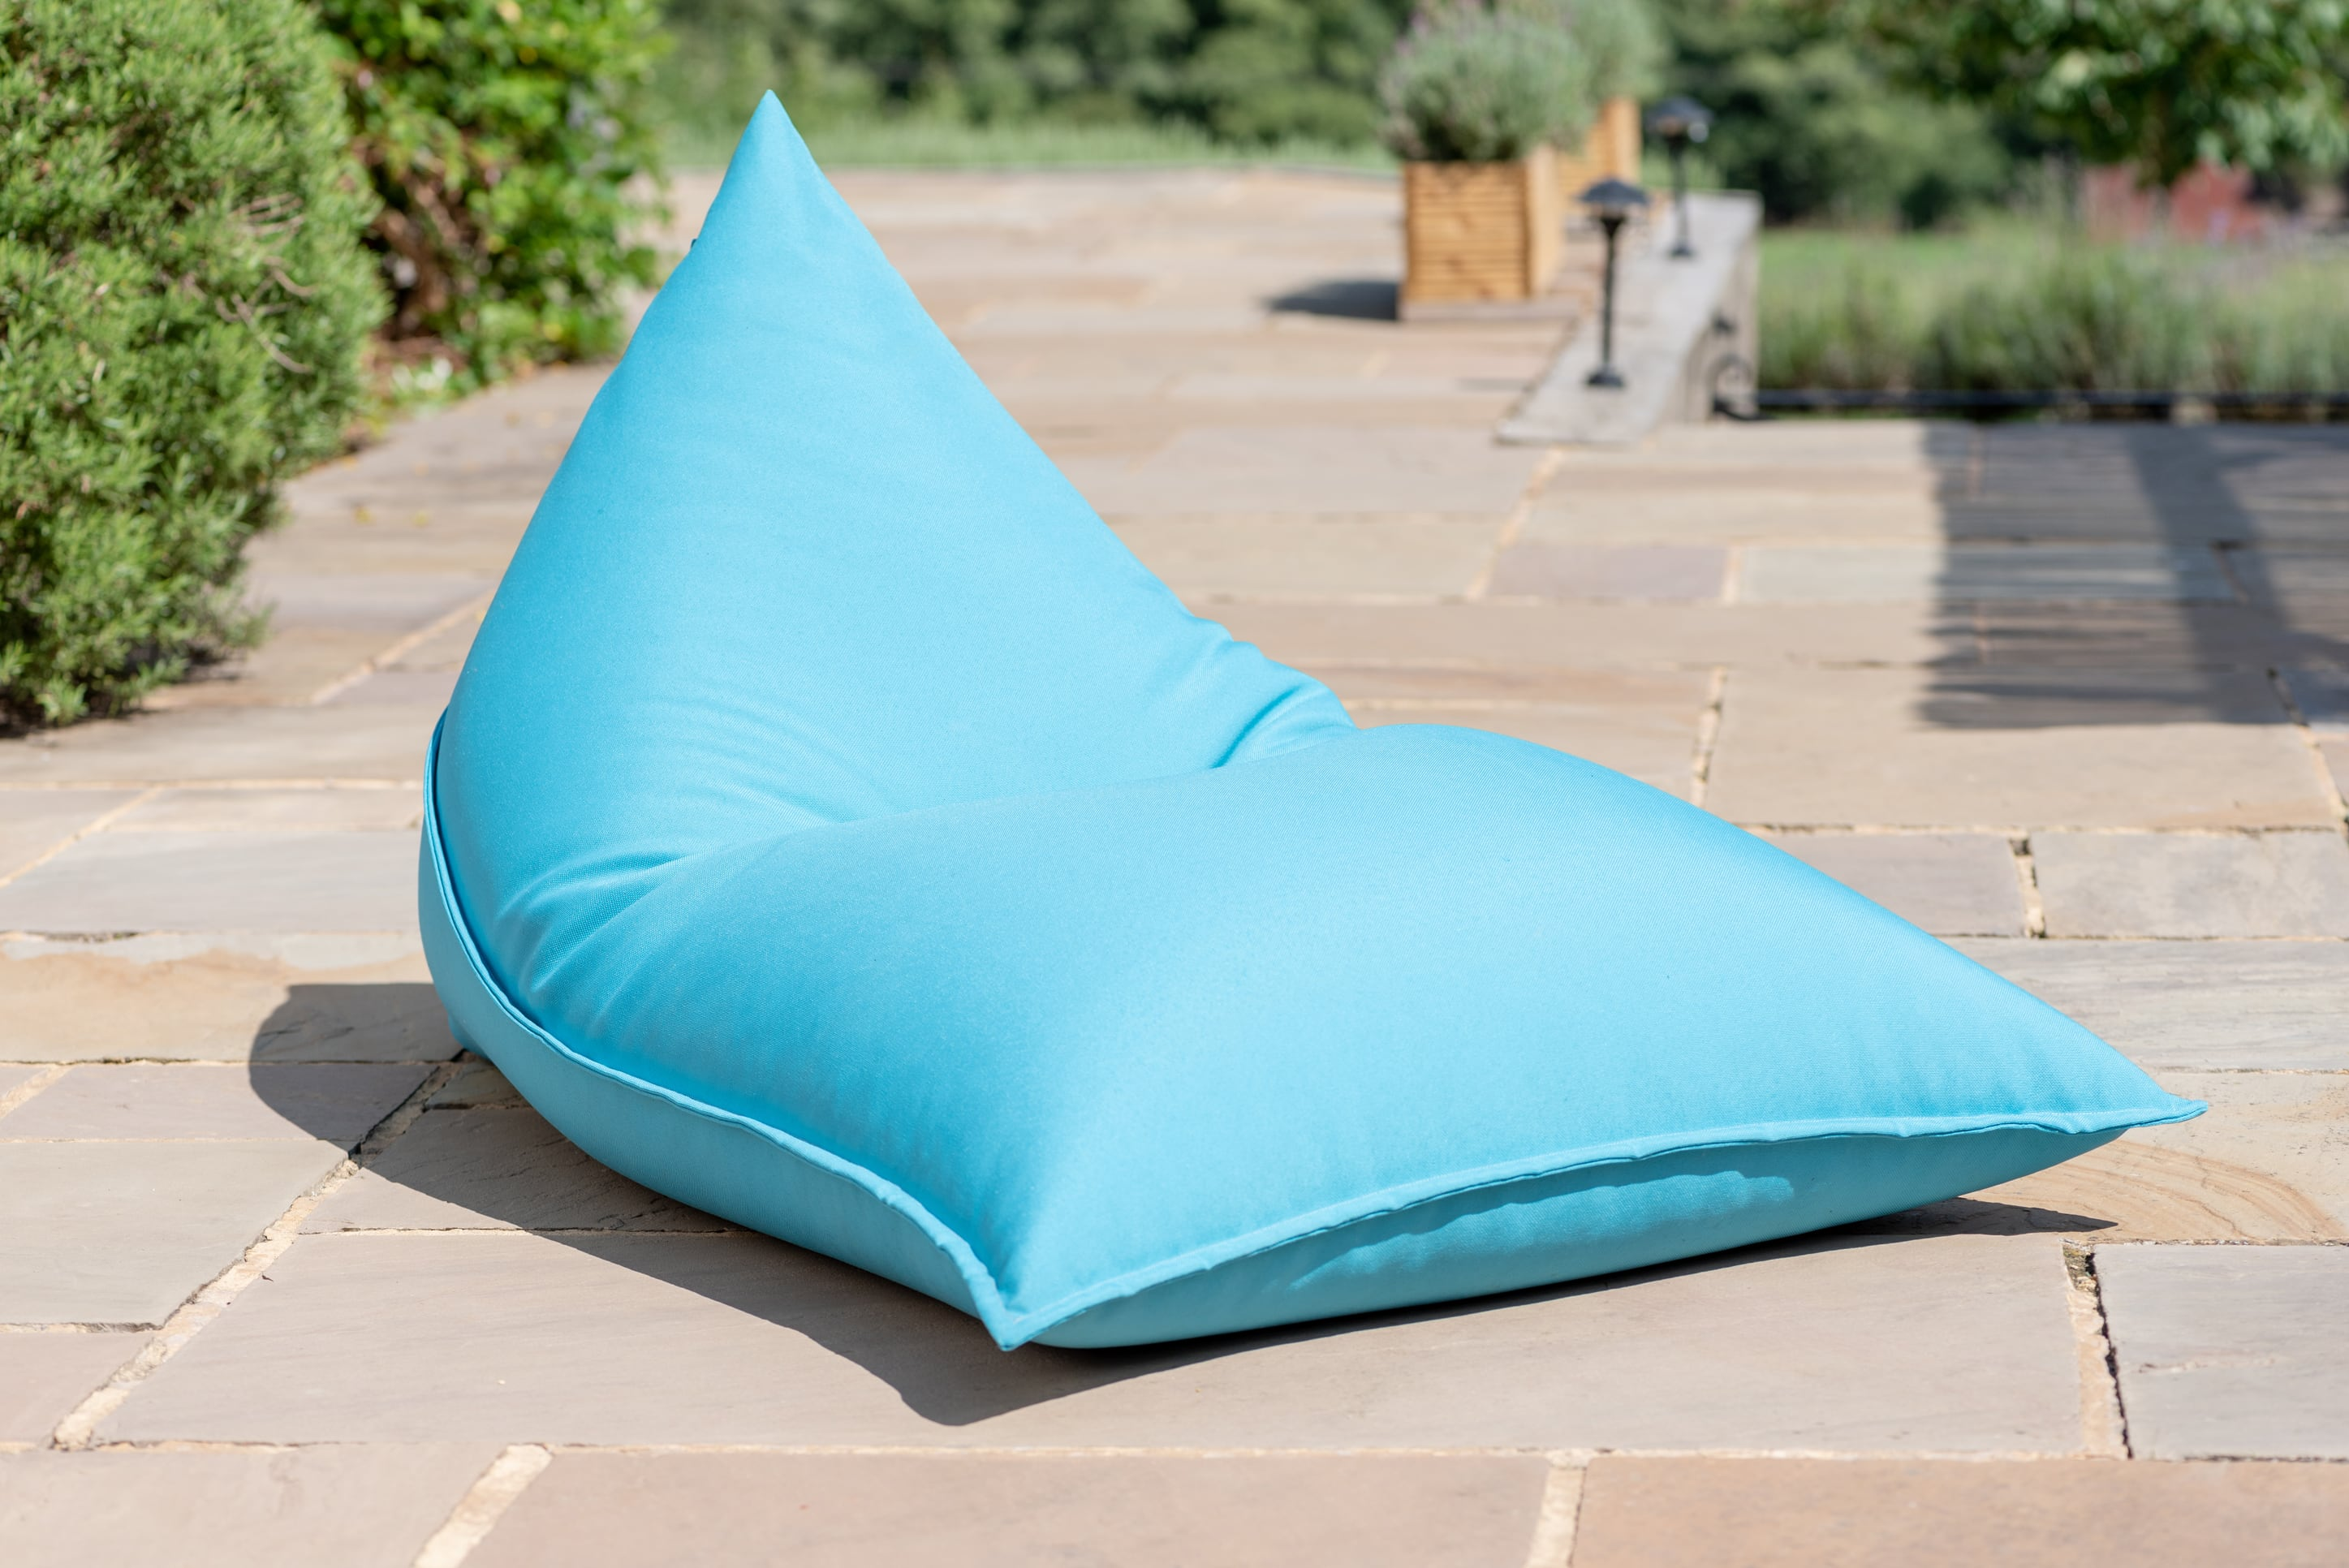 Armadillo Sun bean bag chair in turquoise blue fabric